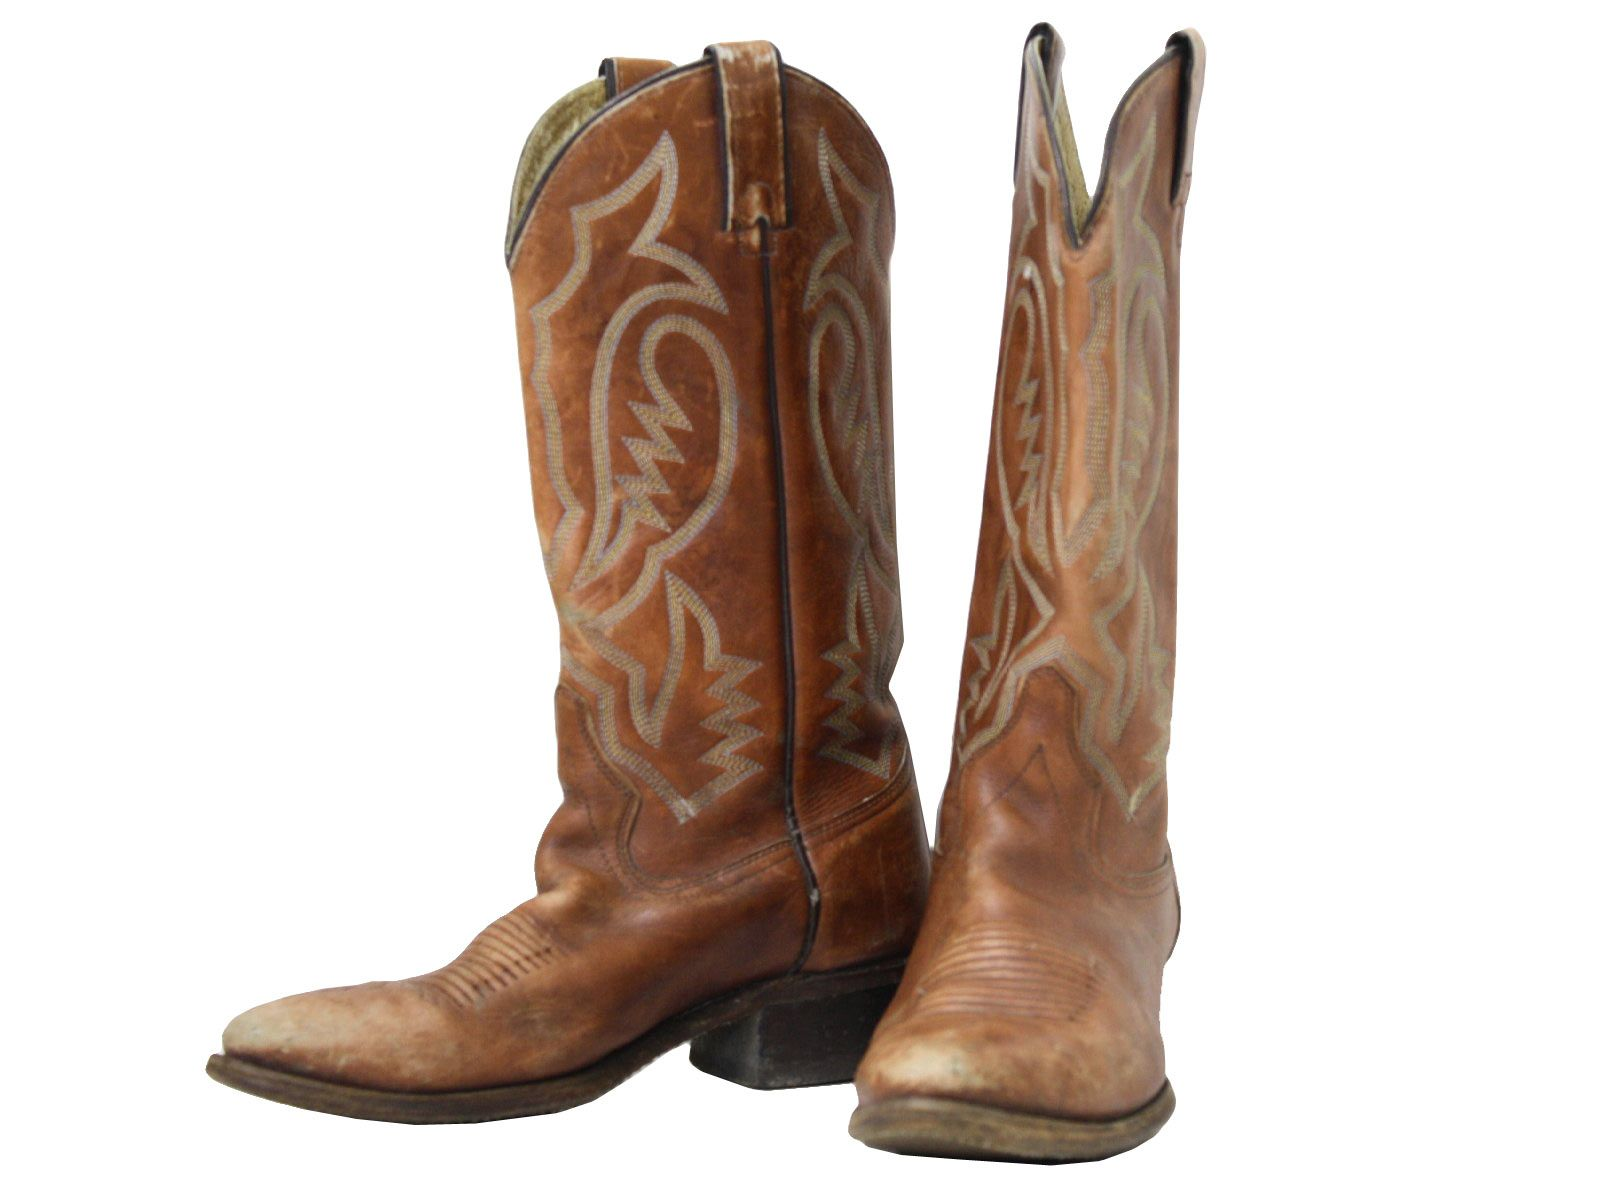 17 Best images about Custom Cowboy Boots on Pinterest | Western ...